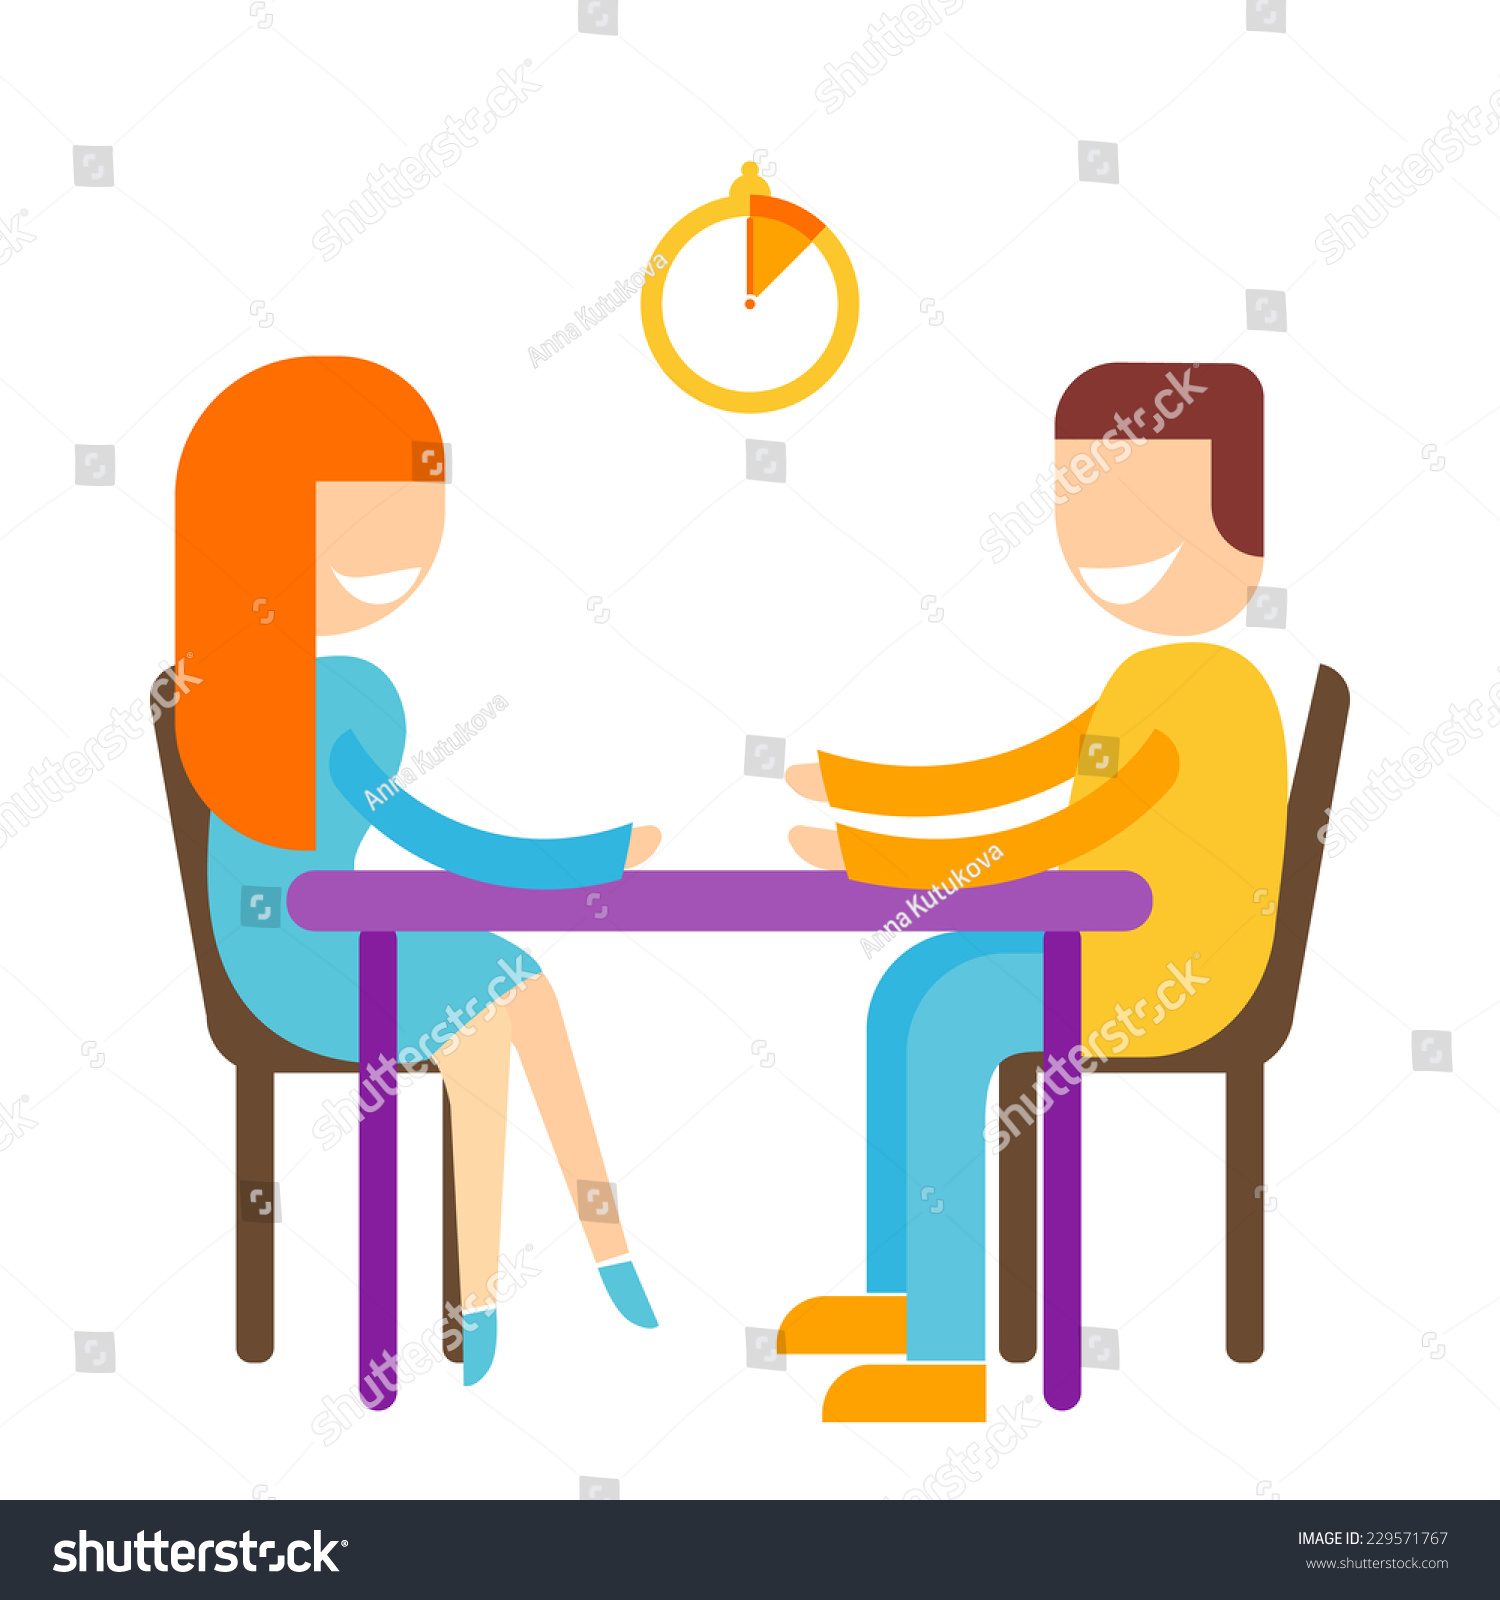 Chat room speed dating